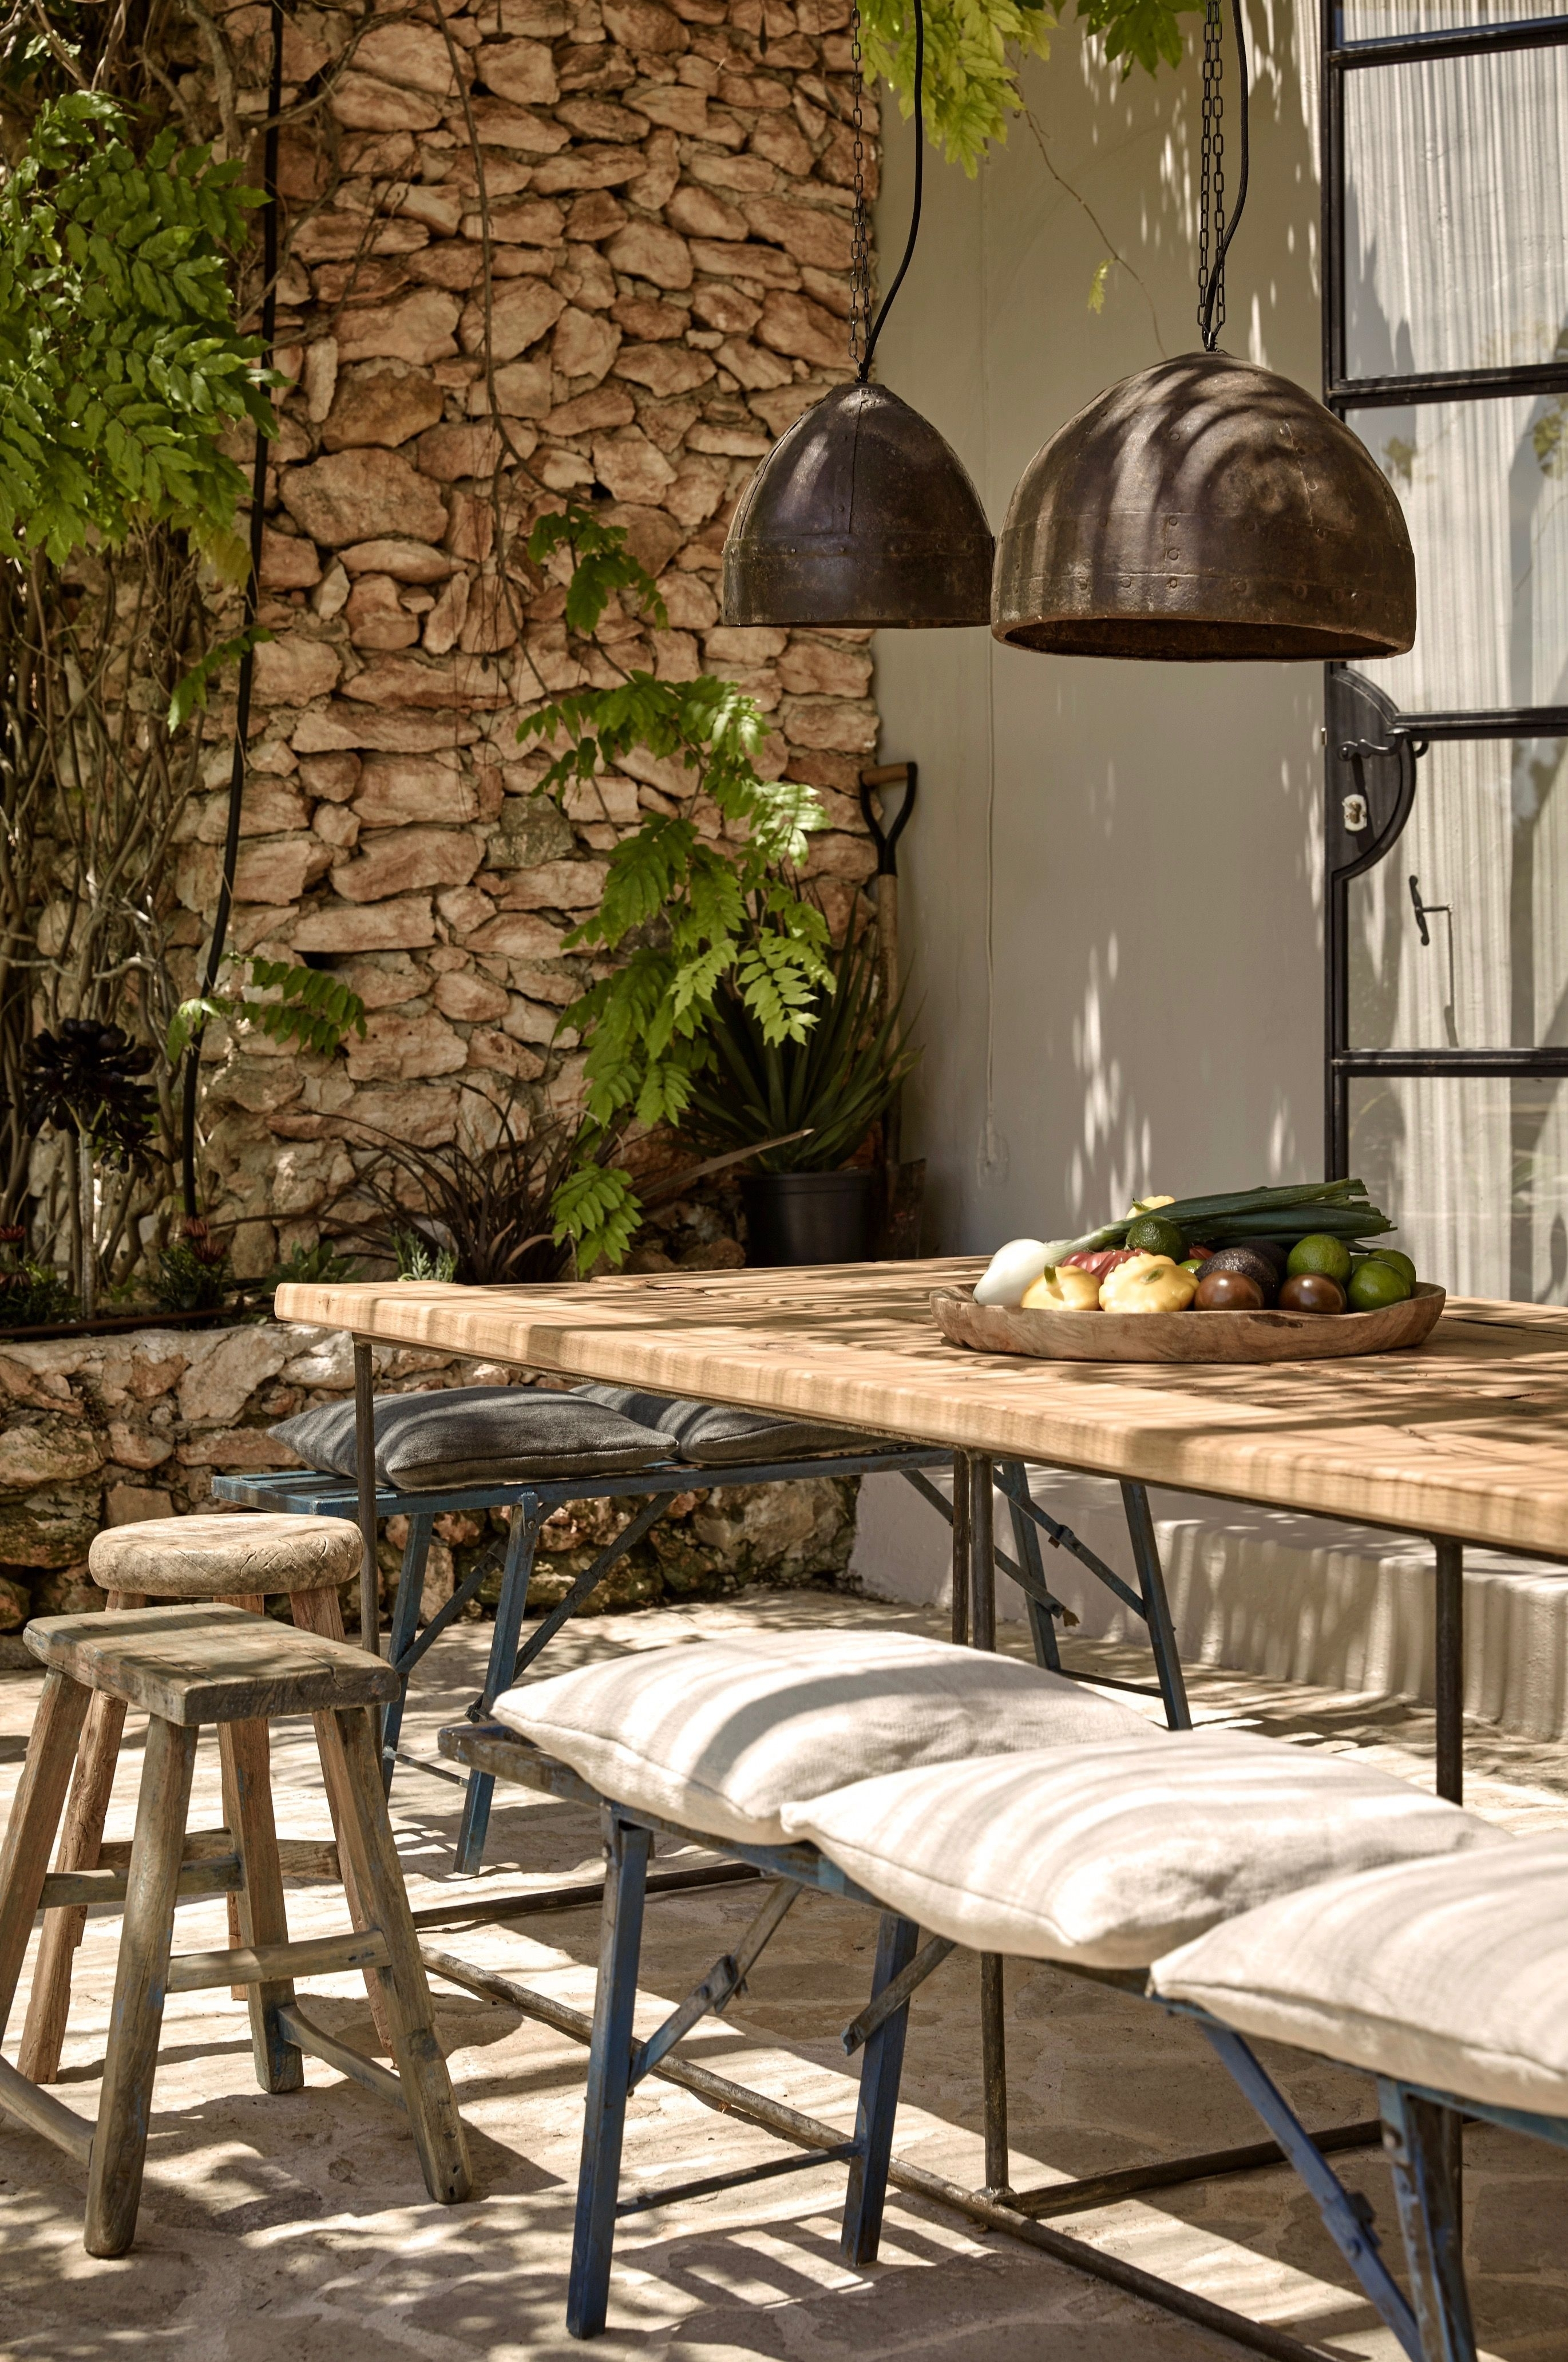 Hotel-La-Granja-Ibiza-Outdoor-Dining-Lanterns-Stone-Wall-Gardenista inside Outdoor Dining Lanterns (Image 7 of 20)